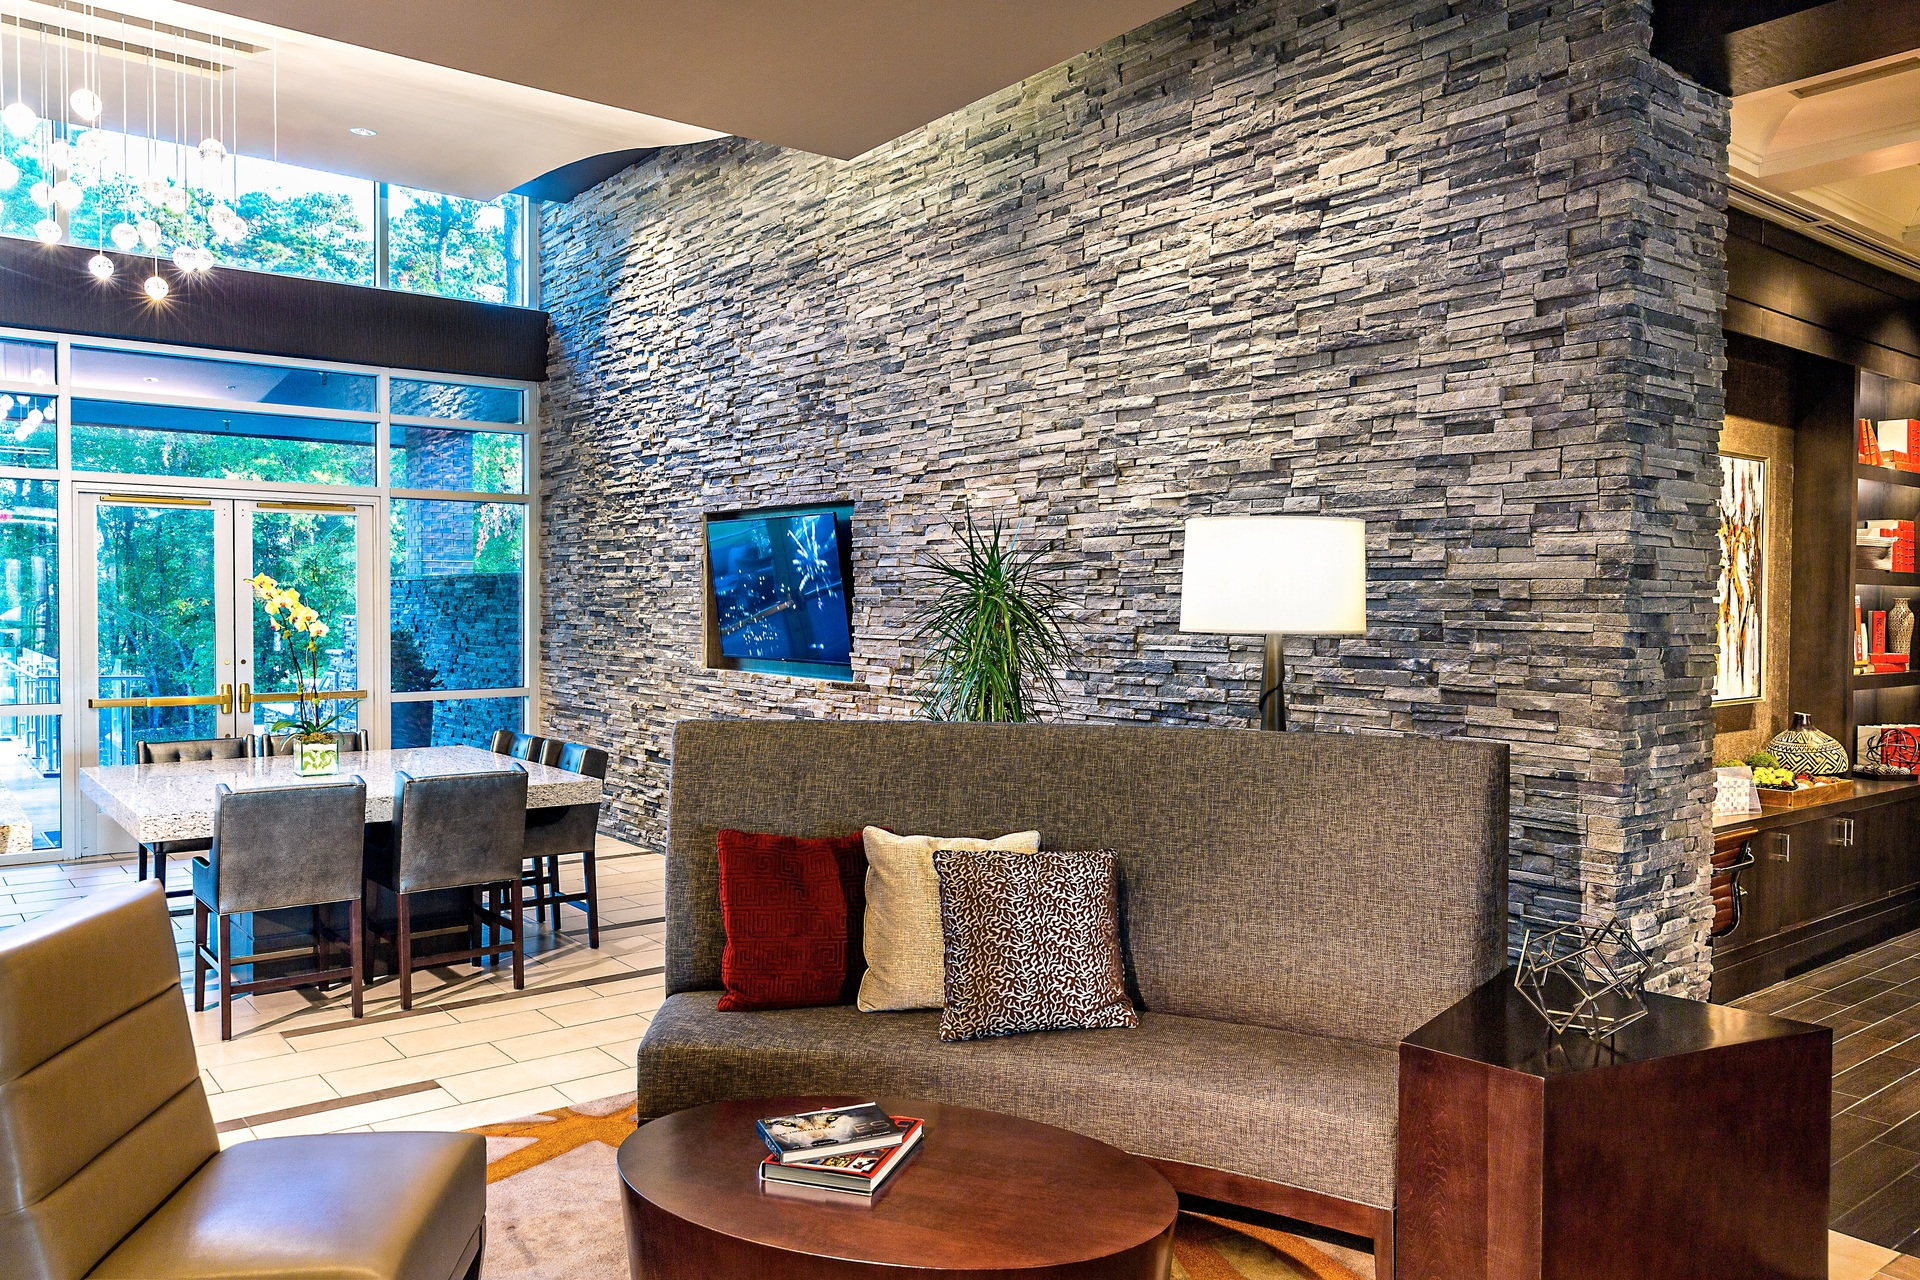 Cultured Stone The Stateview Hotel interior lobby